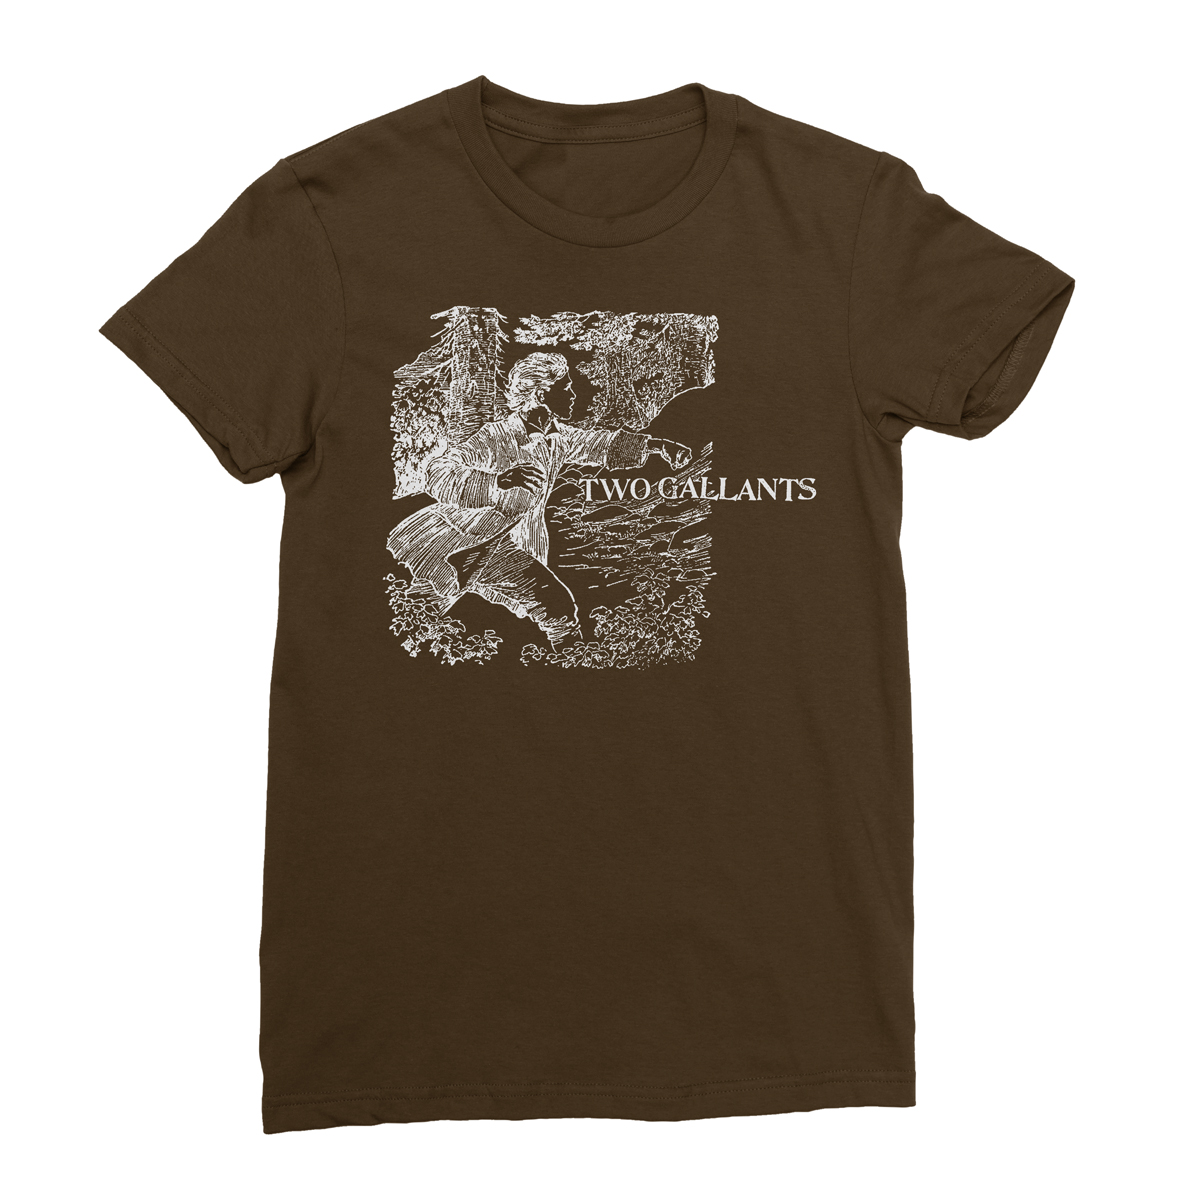 Forest/Throes Tee - Brown - Two Gallants